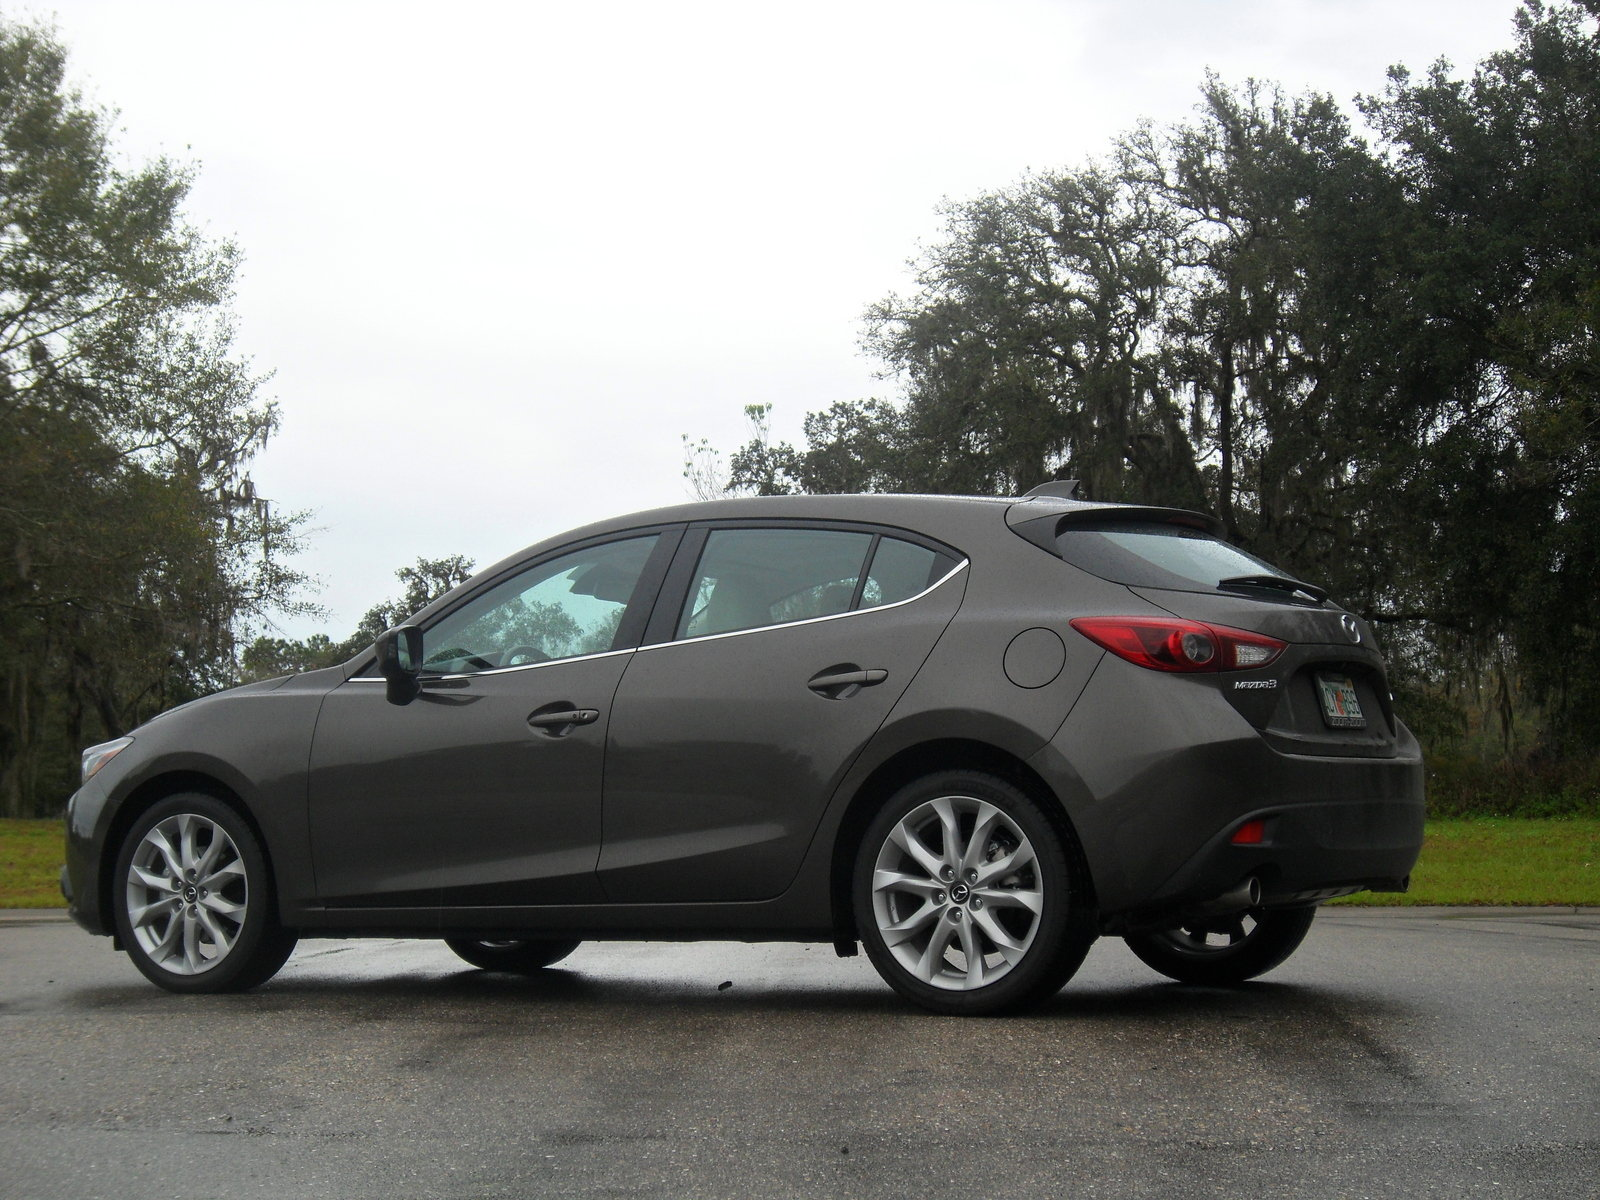 2014 mazda3 s grand touring driven picture 546104 car review top speed. Black Bedroom Furniture Sets. Home Design Ideas